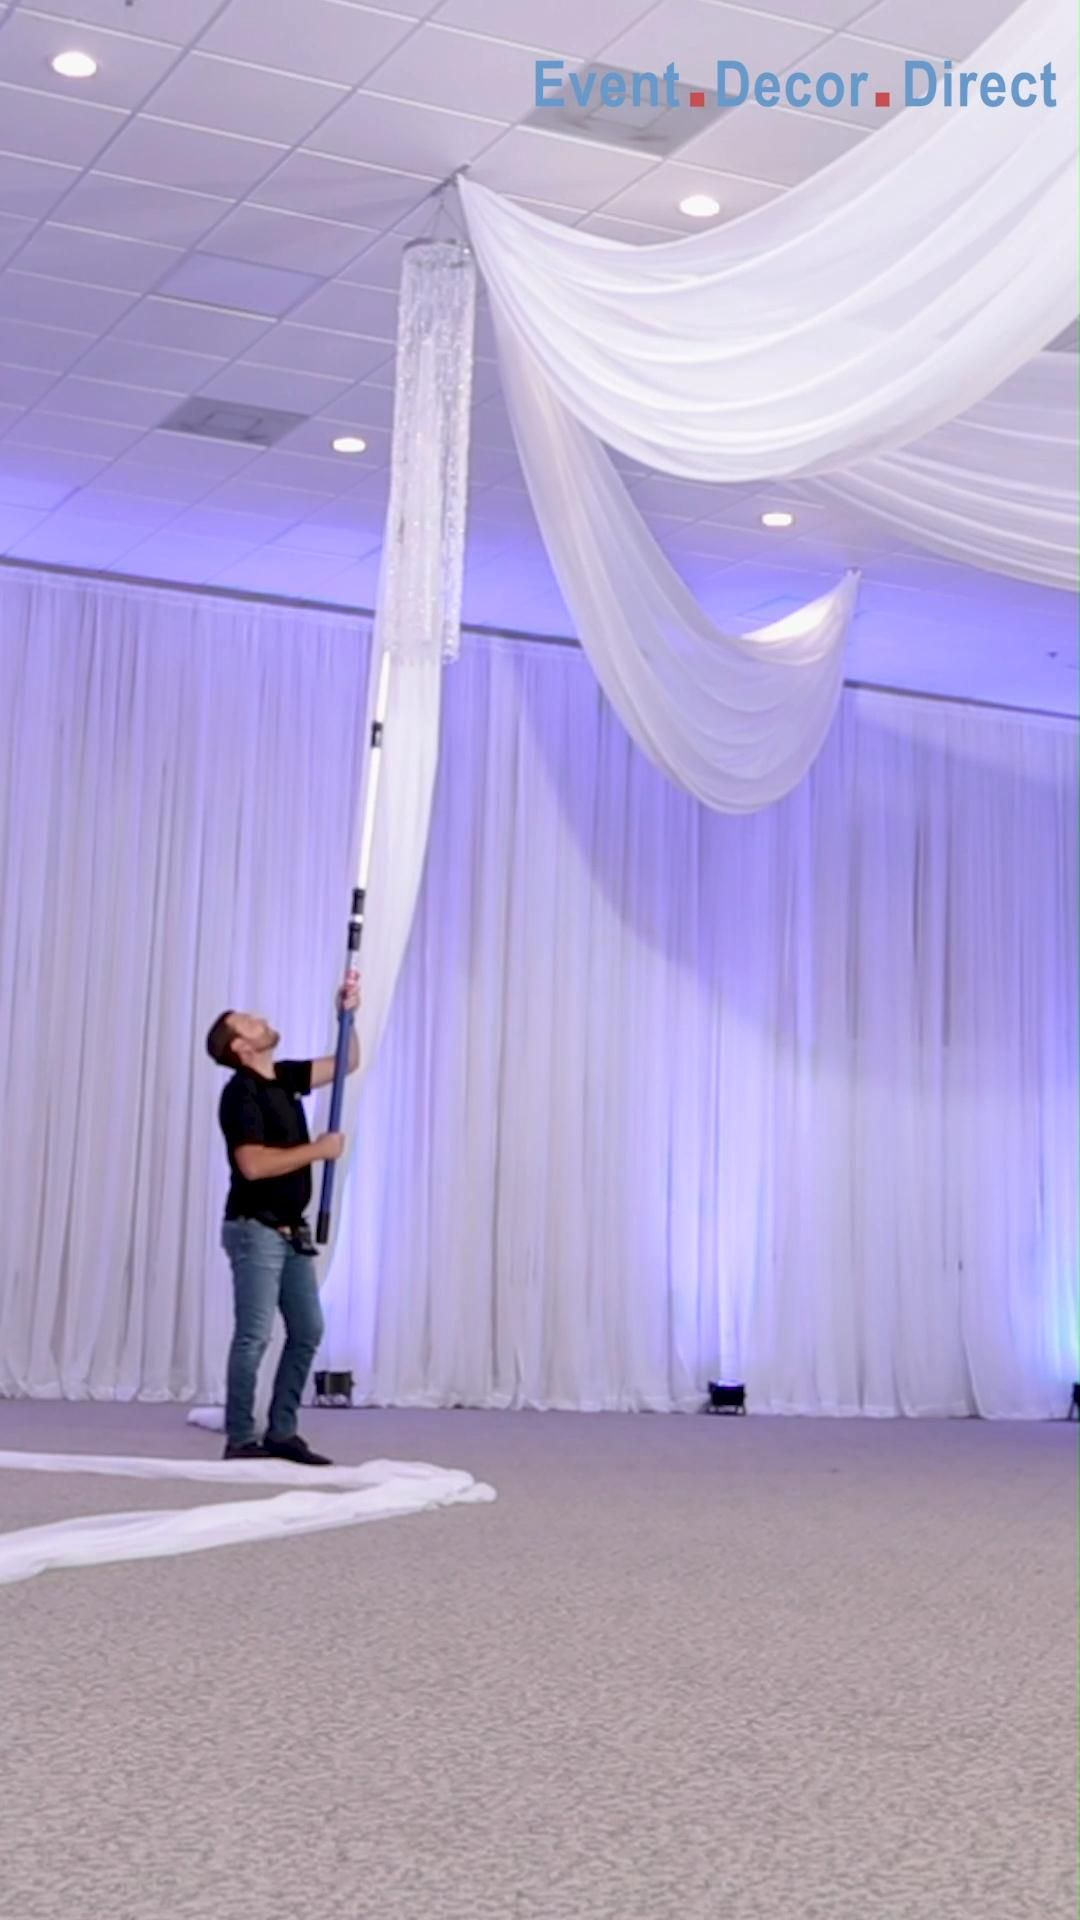 ON SALE: Easy-to-Use Ceiling Draping Kits. Create